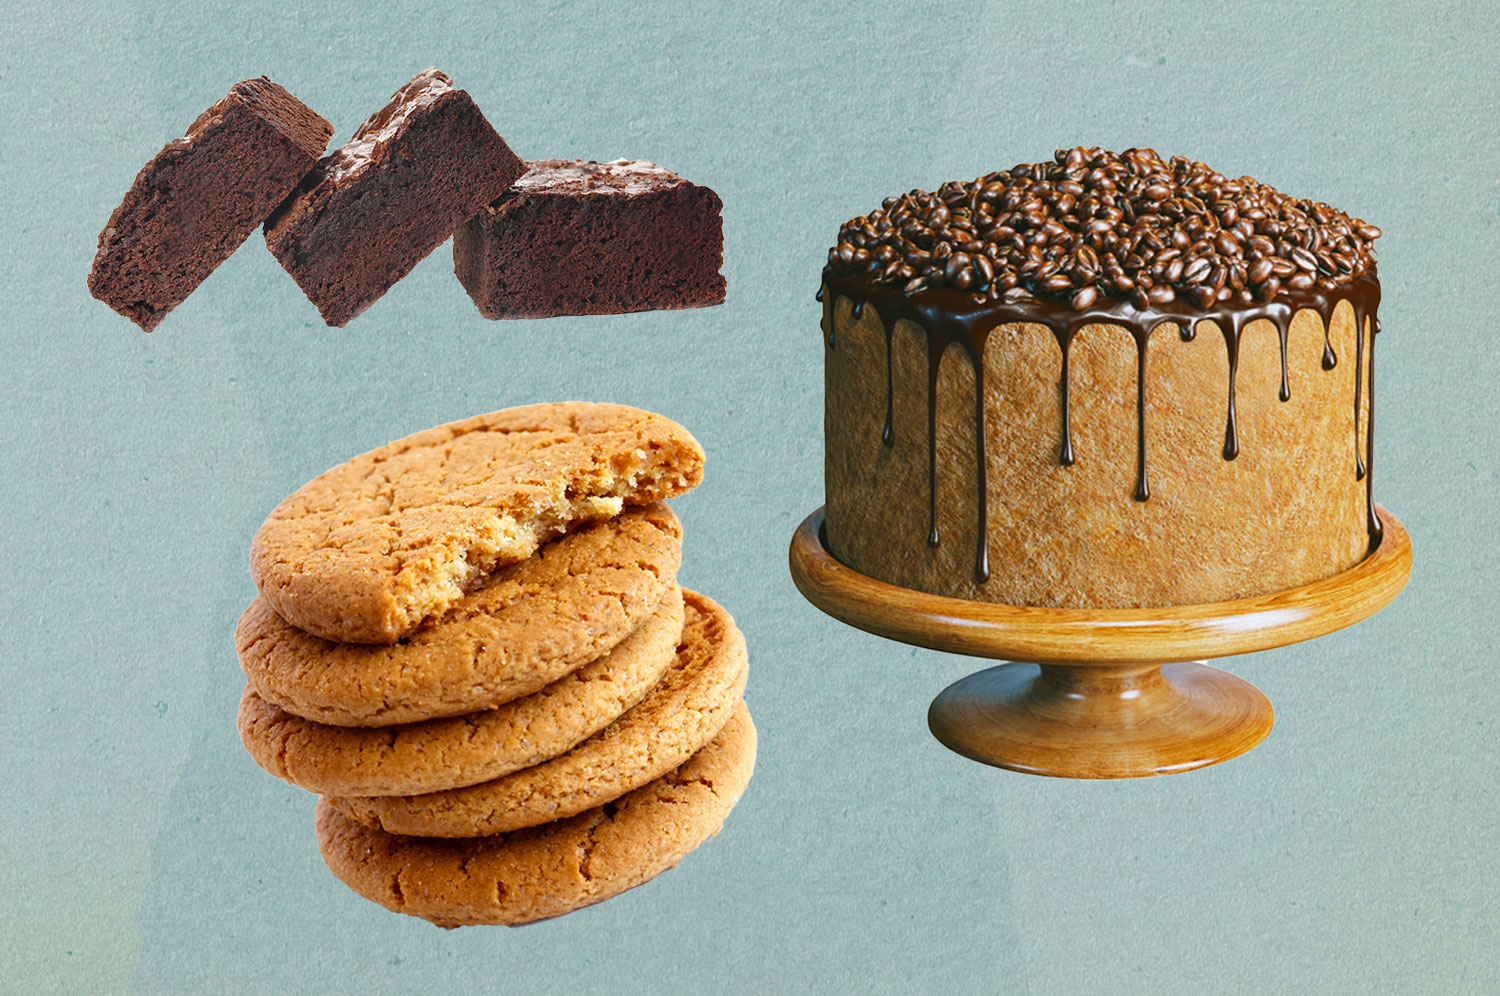 Three brownies, a stack of cookies, and a cake on a cake stand.